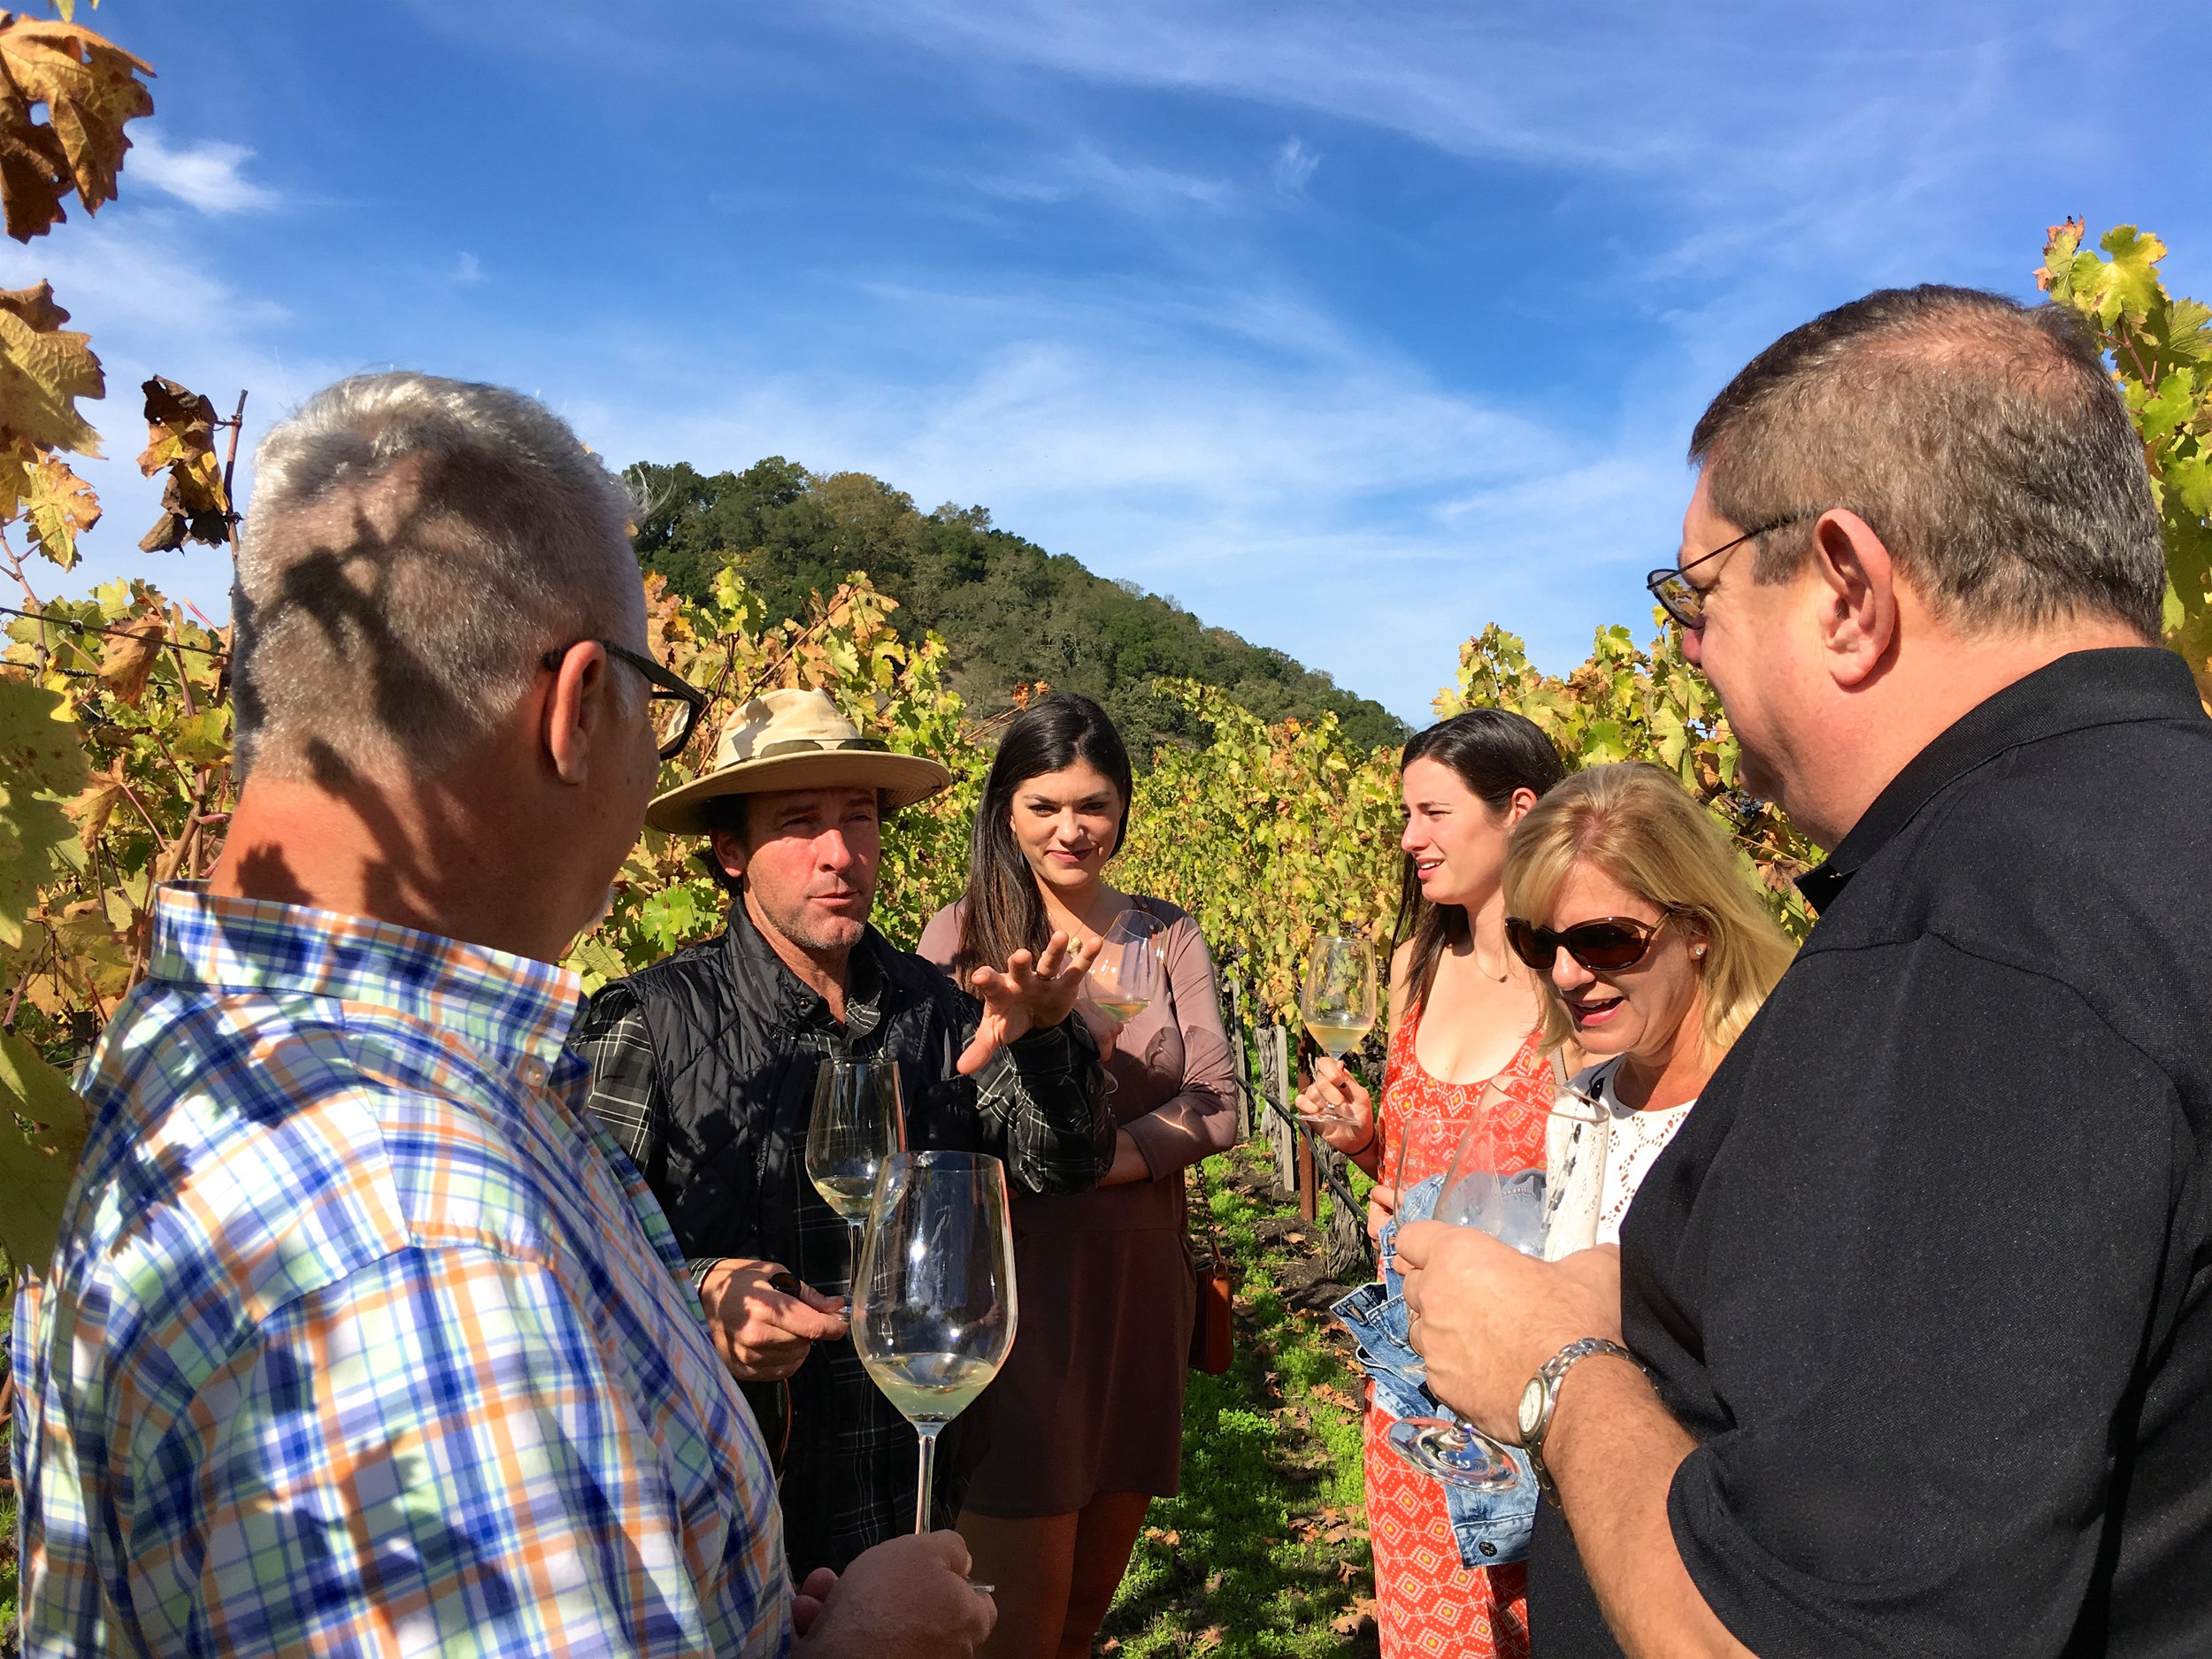 Ted Osborne, winemaker and owner of Olabisi wines, giving an in-vineyard tour  (  Photo: Mike Casey, The 29 Napa  )